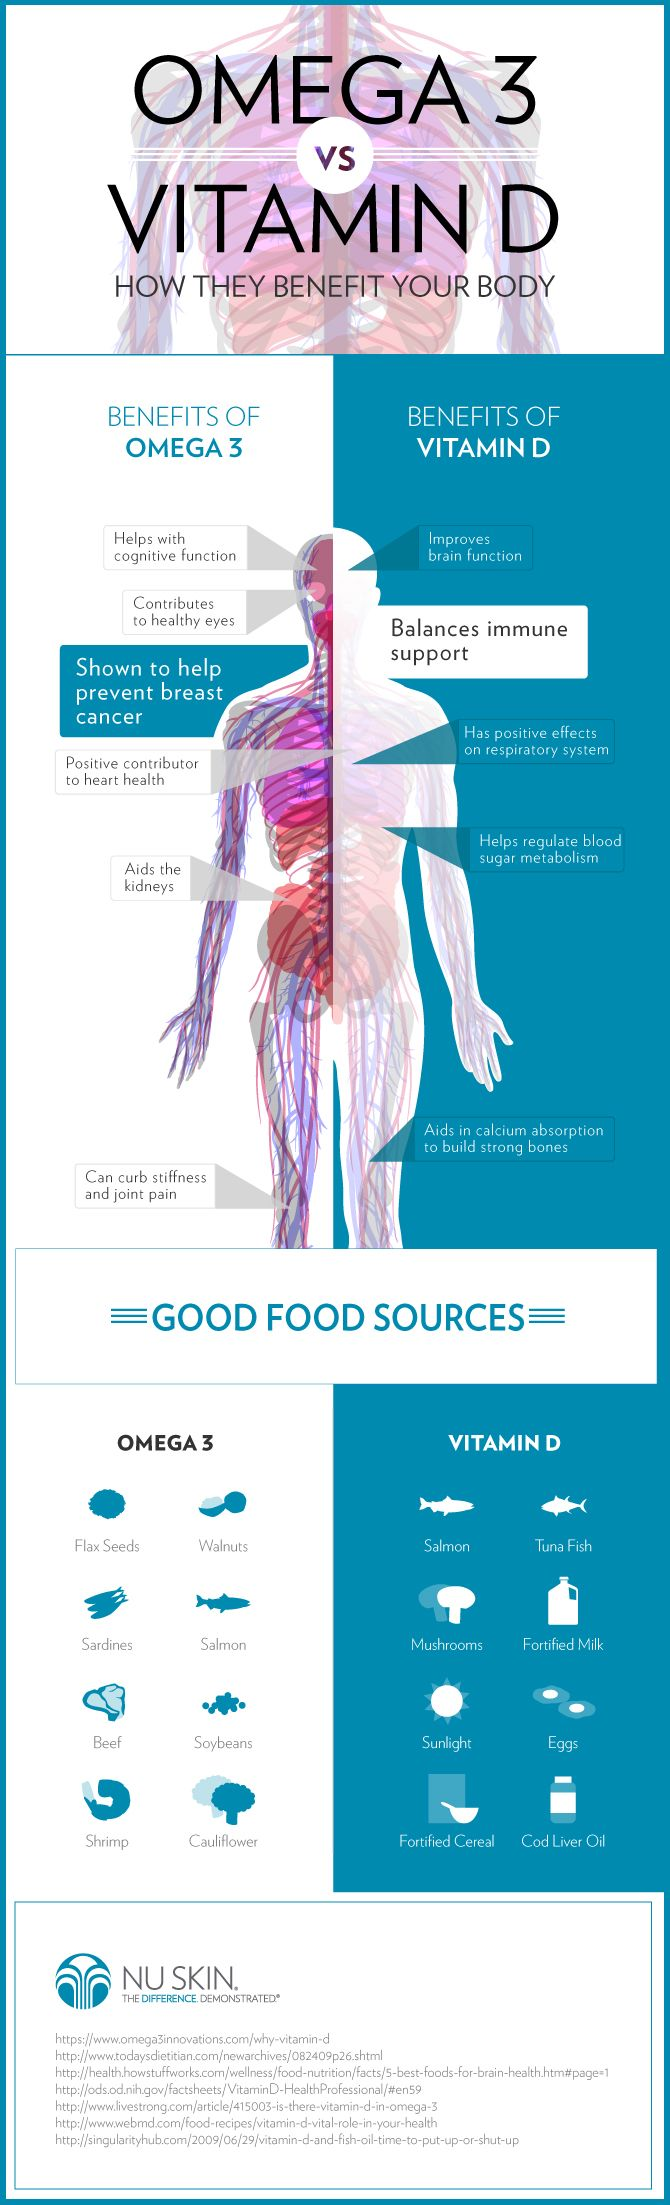 Vitamin D vs Omega 3, The Surprising Benefits You May not be Aware of. #NuSkin